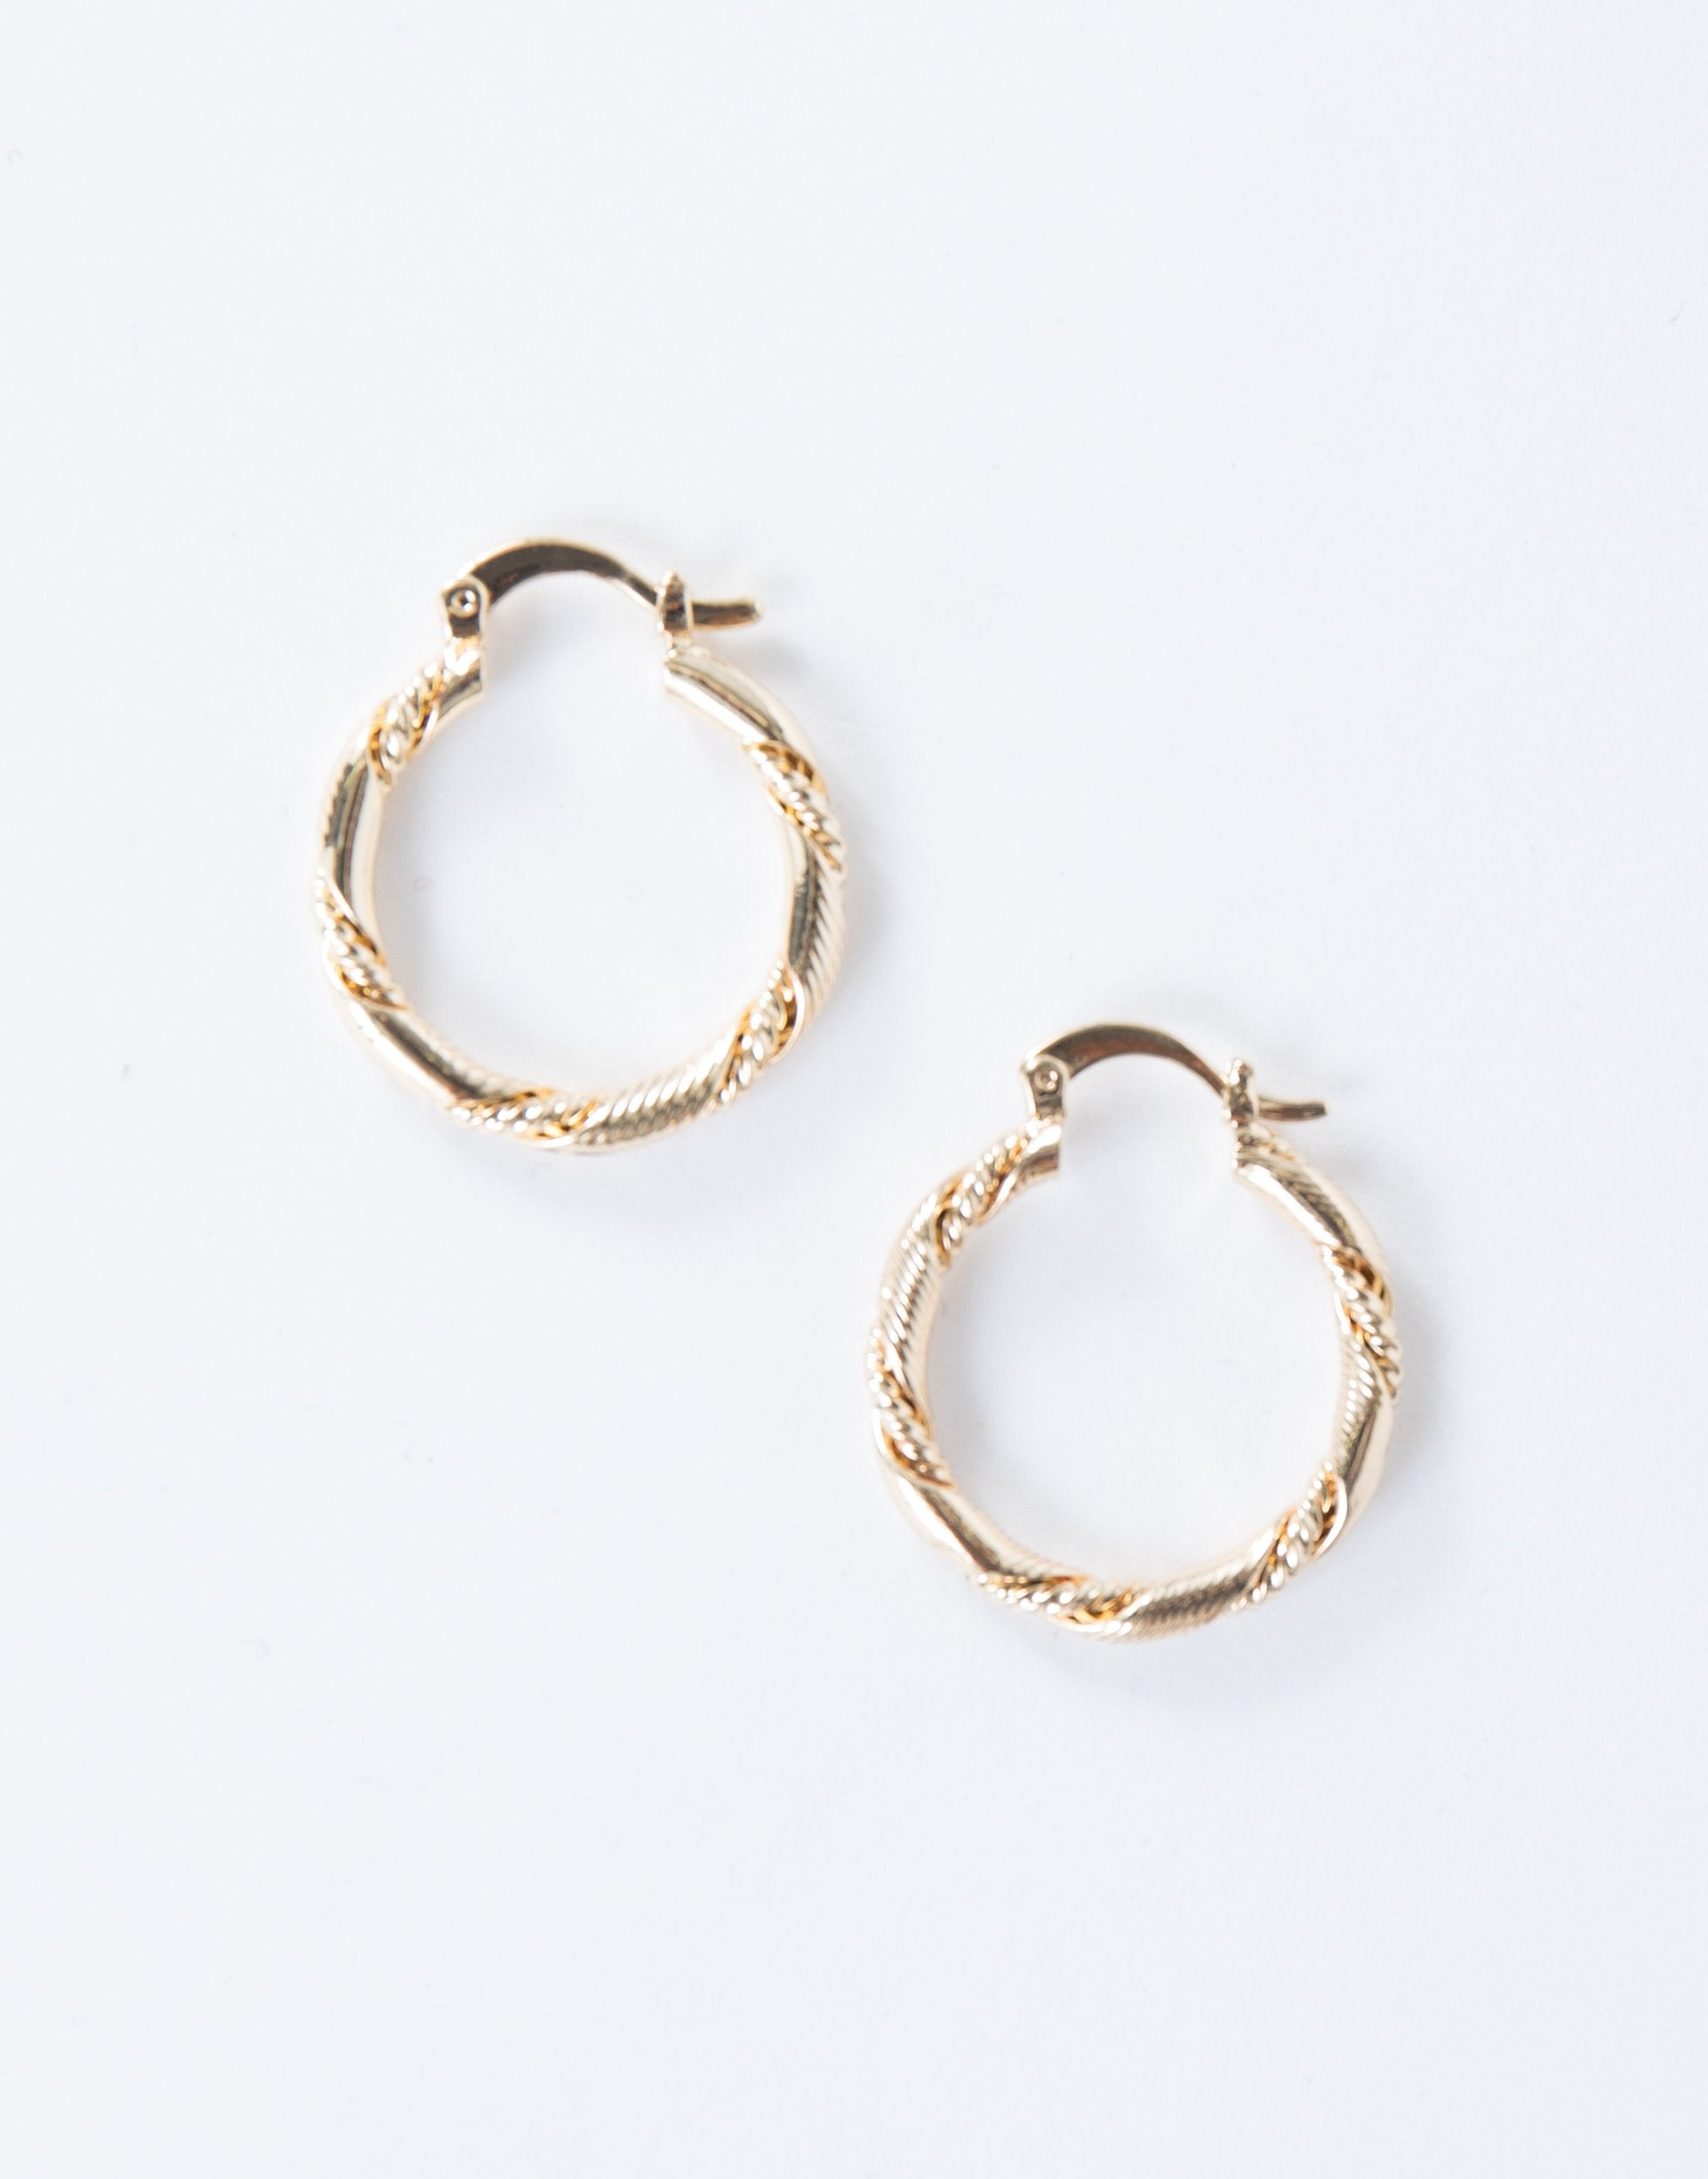 hood melody available earrings in hoop hoops ehsani medium sizes sade med products